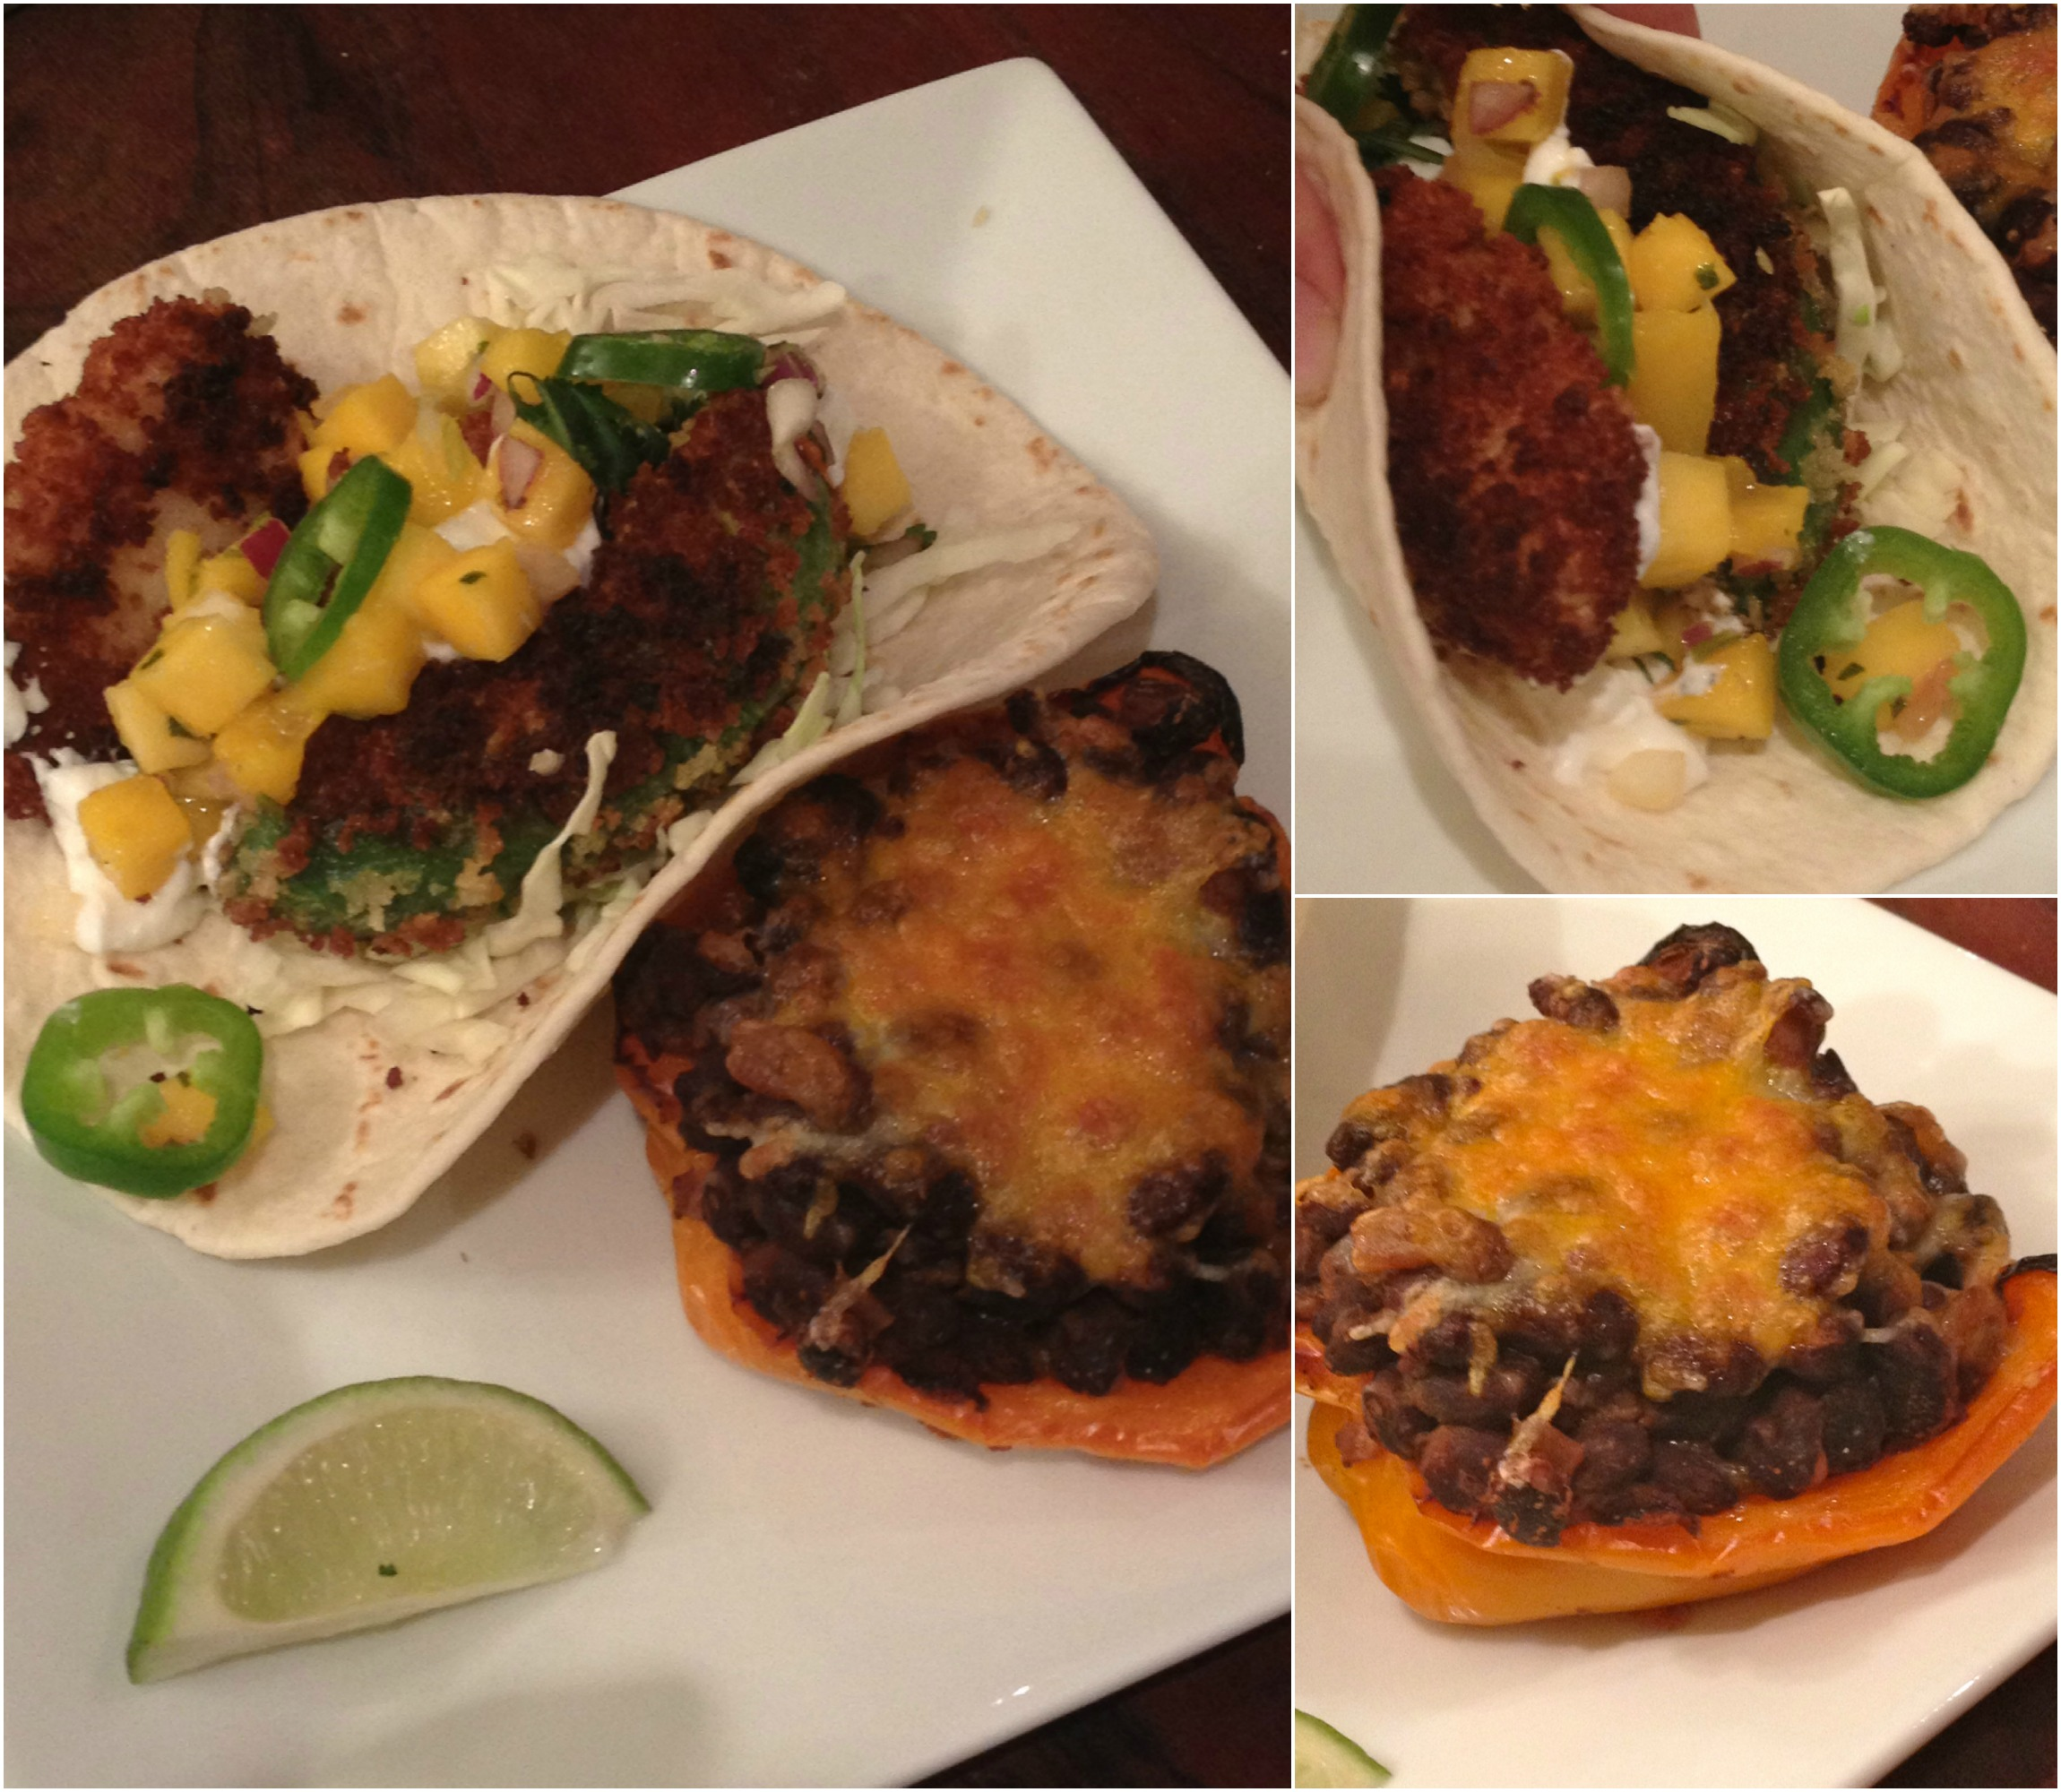 fried tacos and stuffed peppers